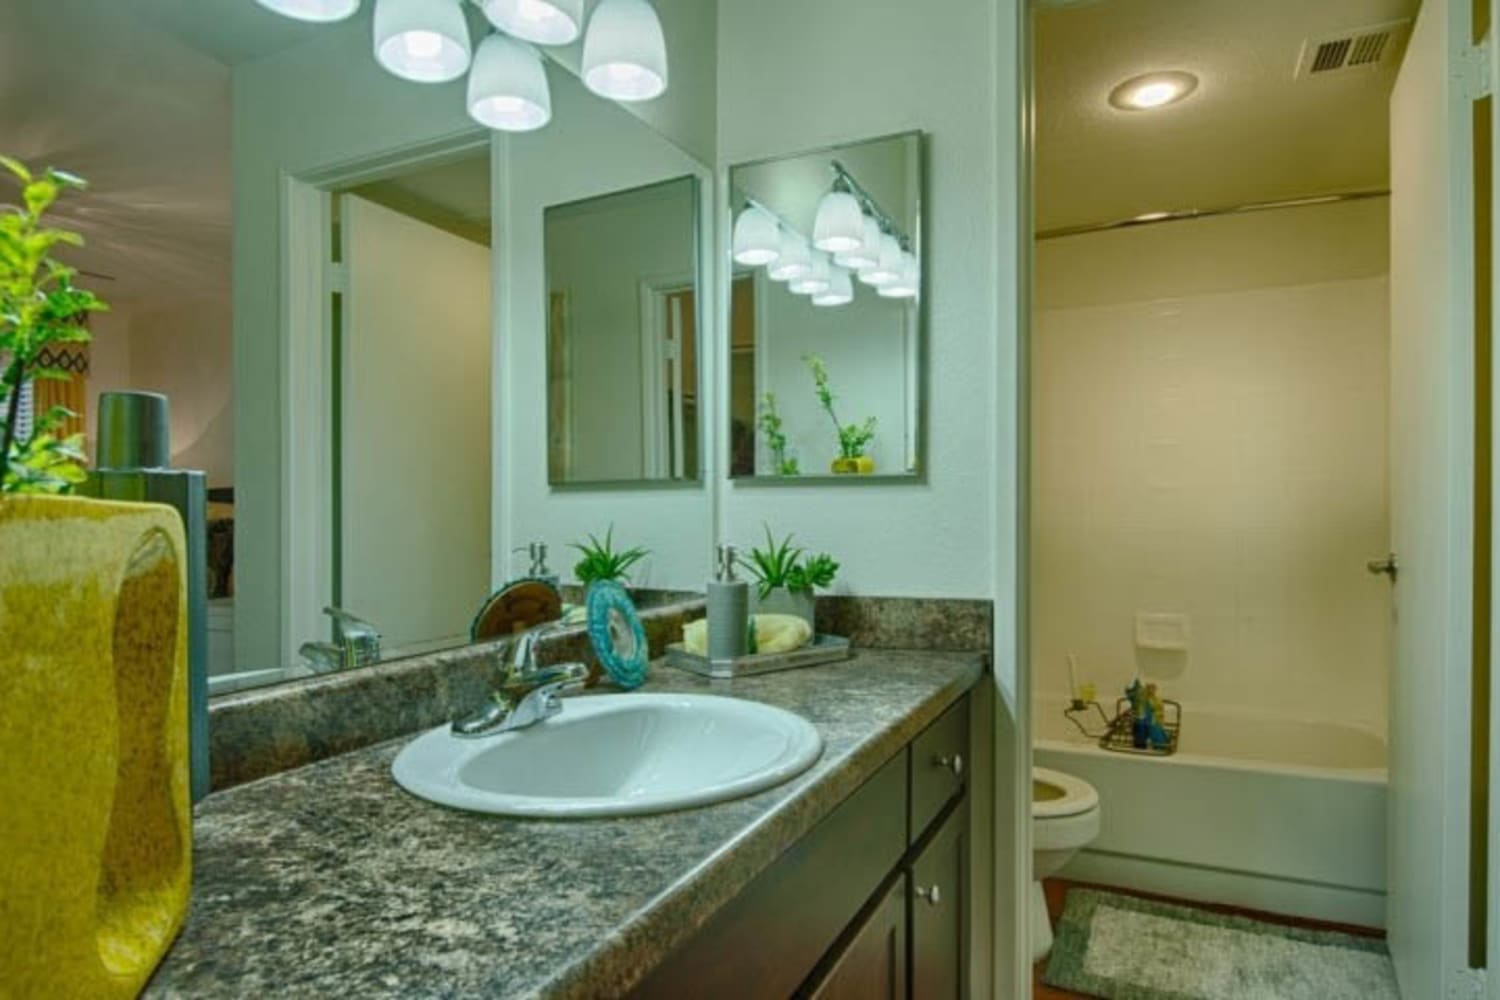 Cabrillo Apartments offer ample counter space in bathroom interiors in Scottsdale, Arizona